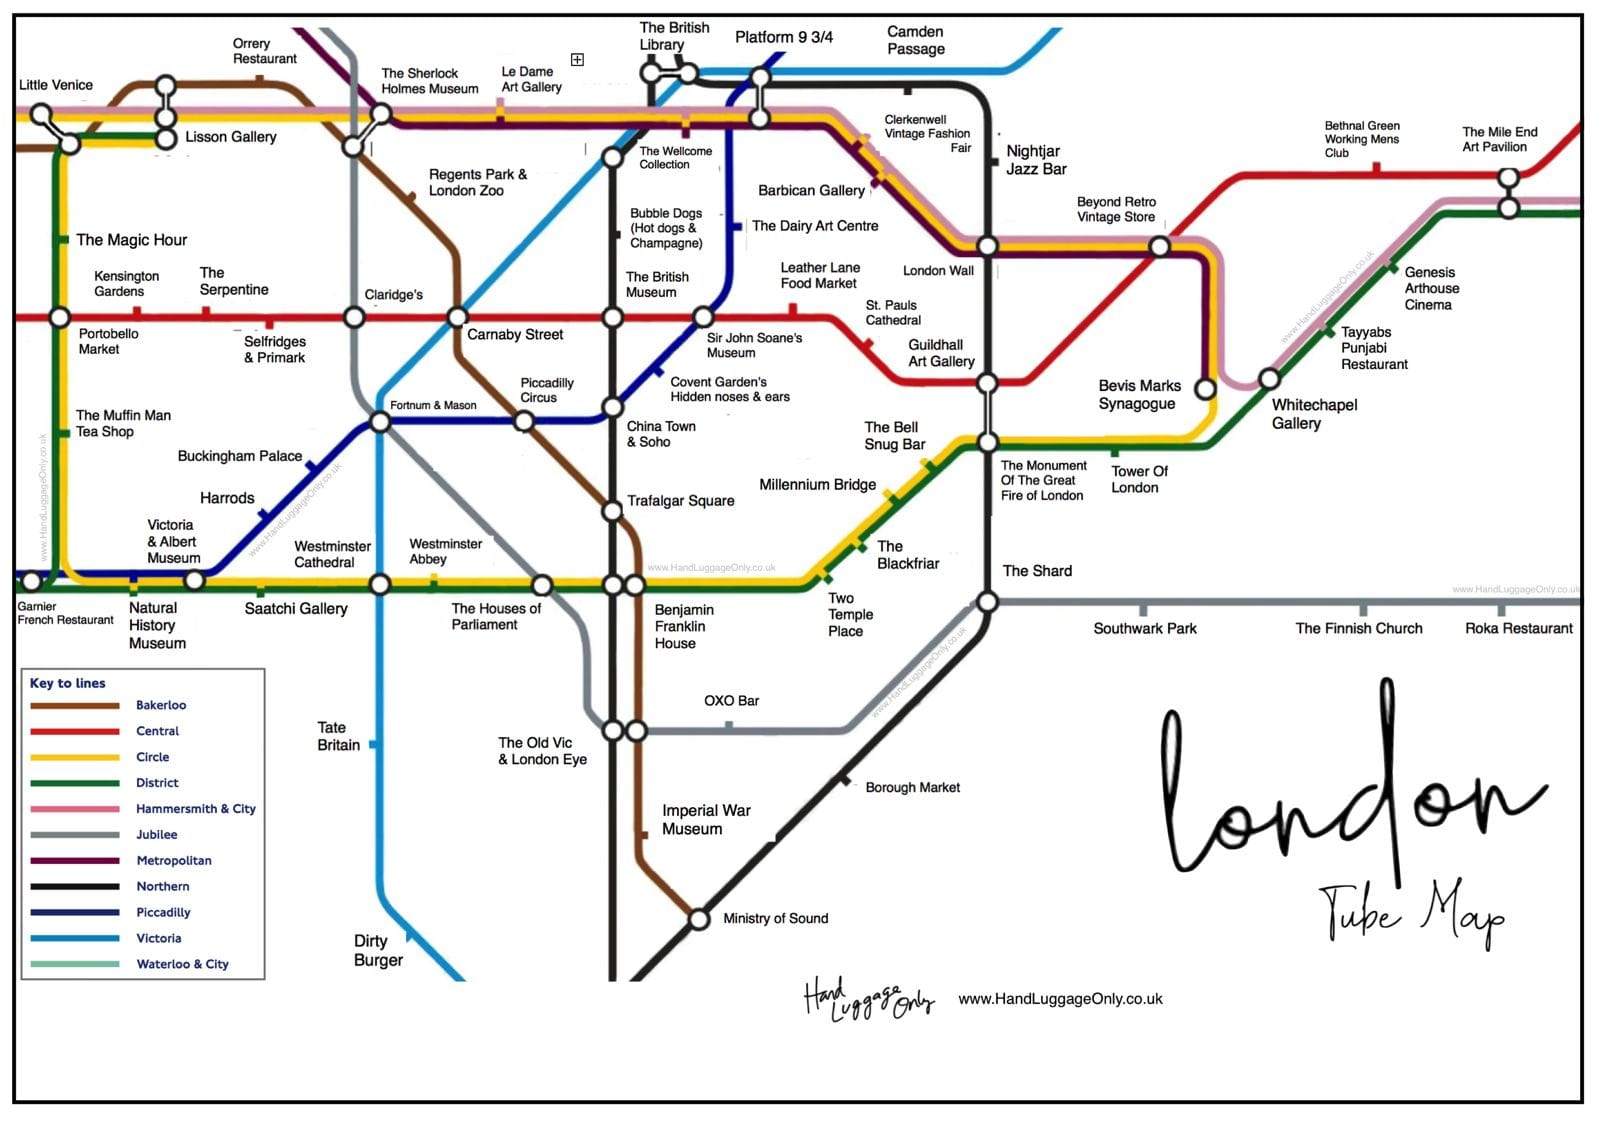 Tube Map Of London.London Underground Map What To See At Each Stop Hand